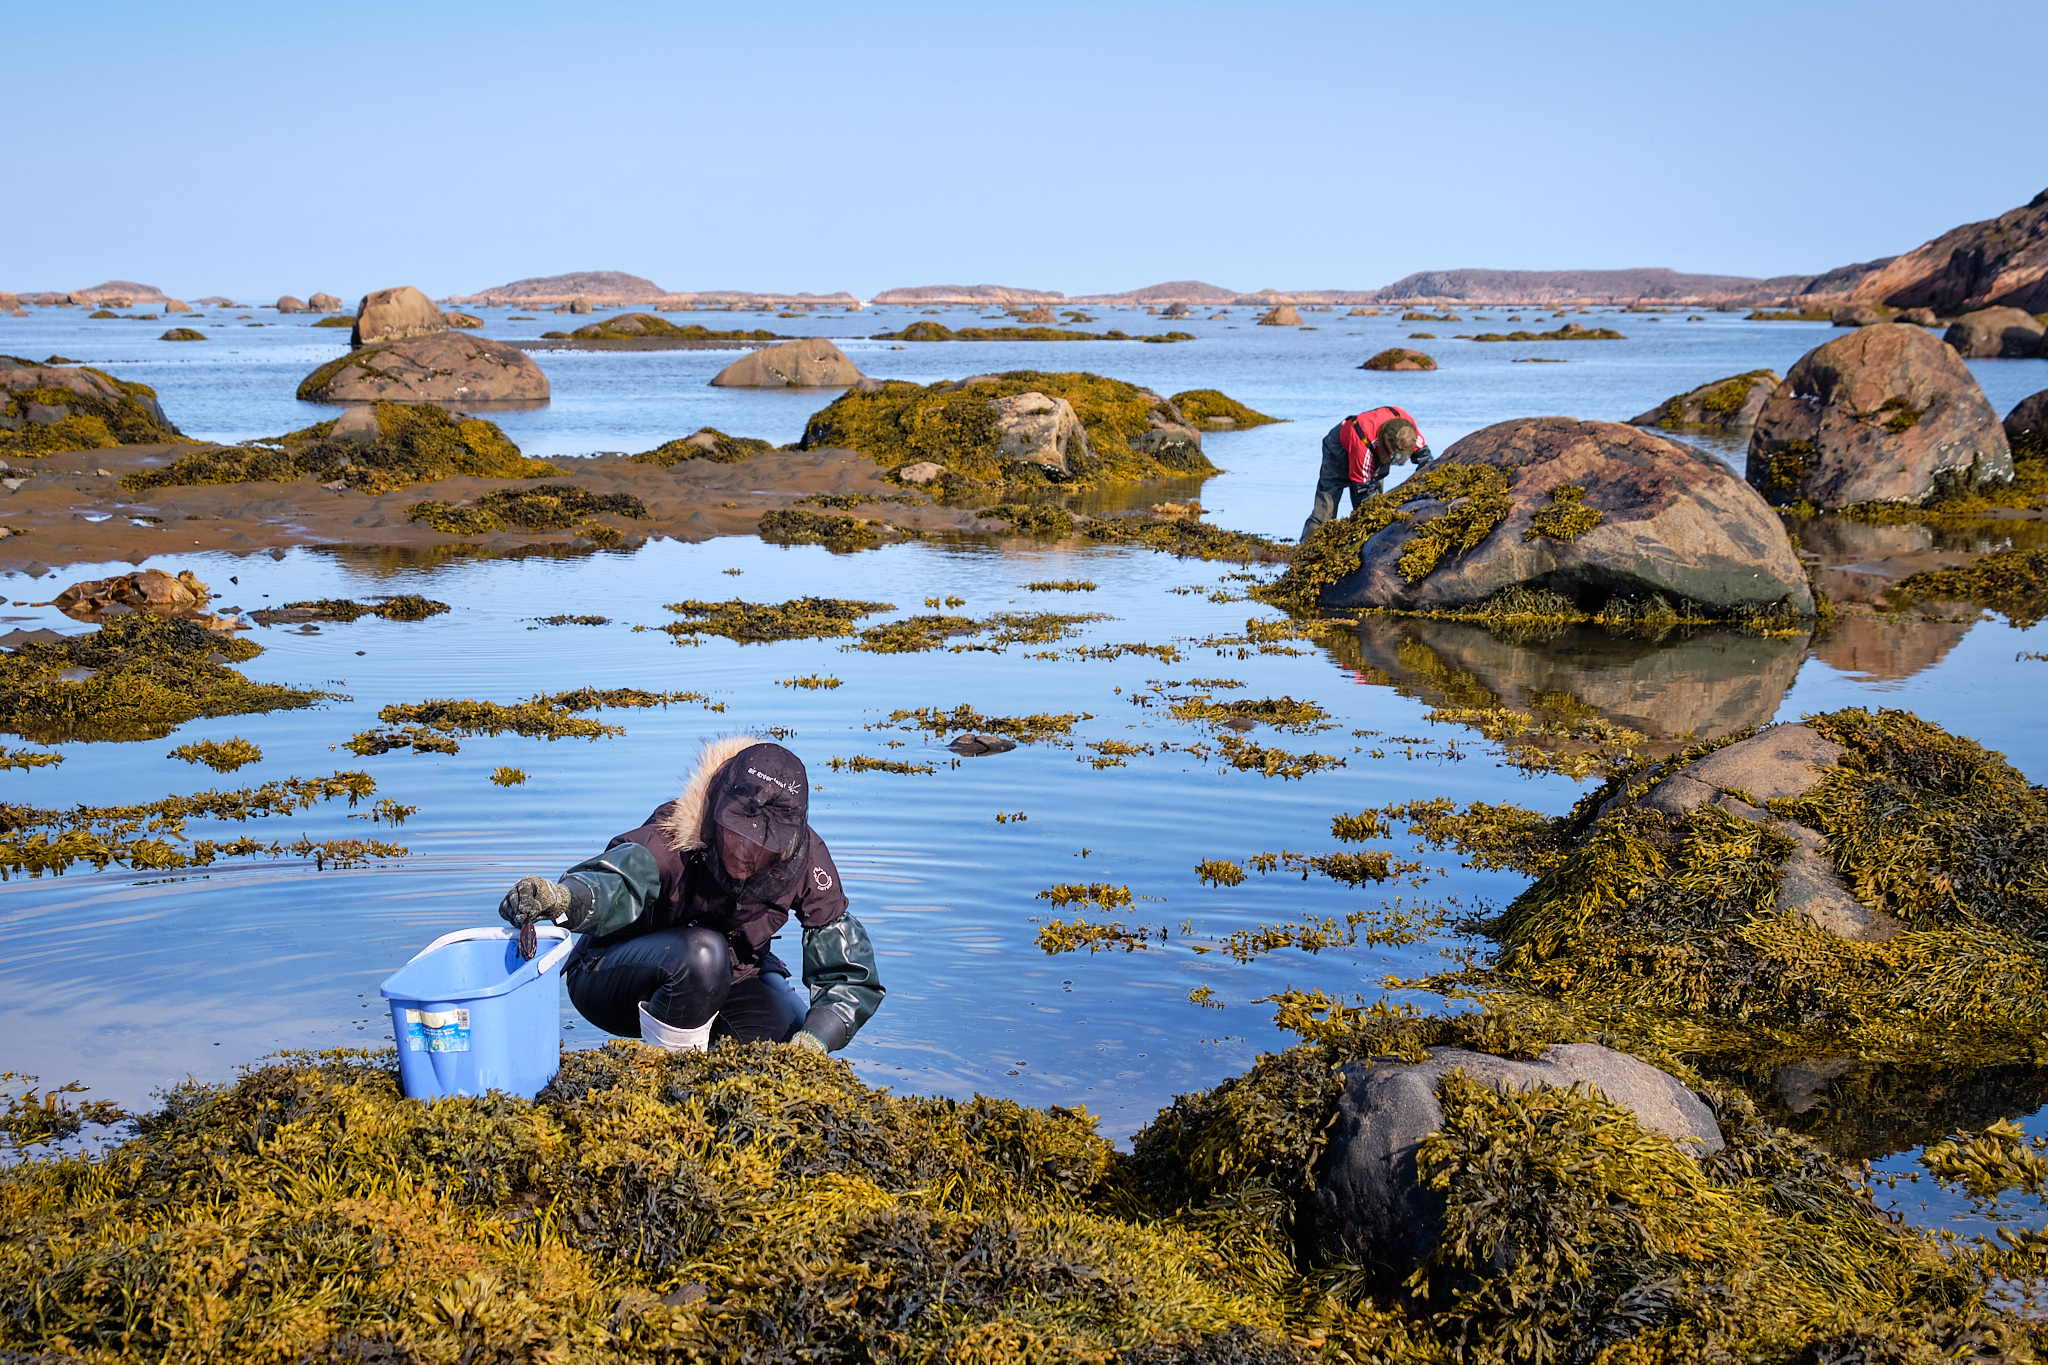 collecting mussels at low tide at Sassannguit - Sisimiut - Greenland